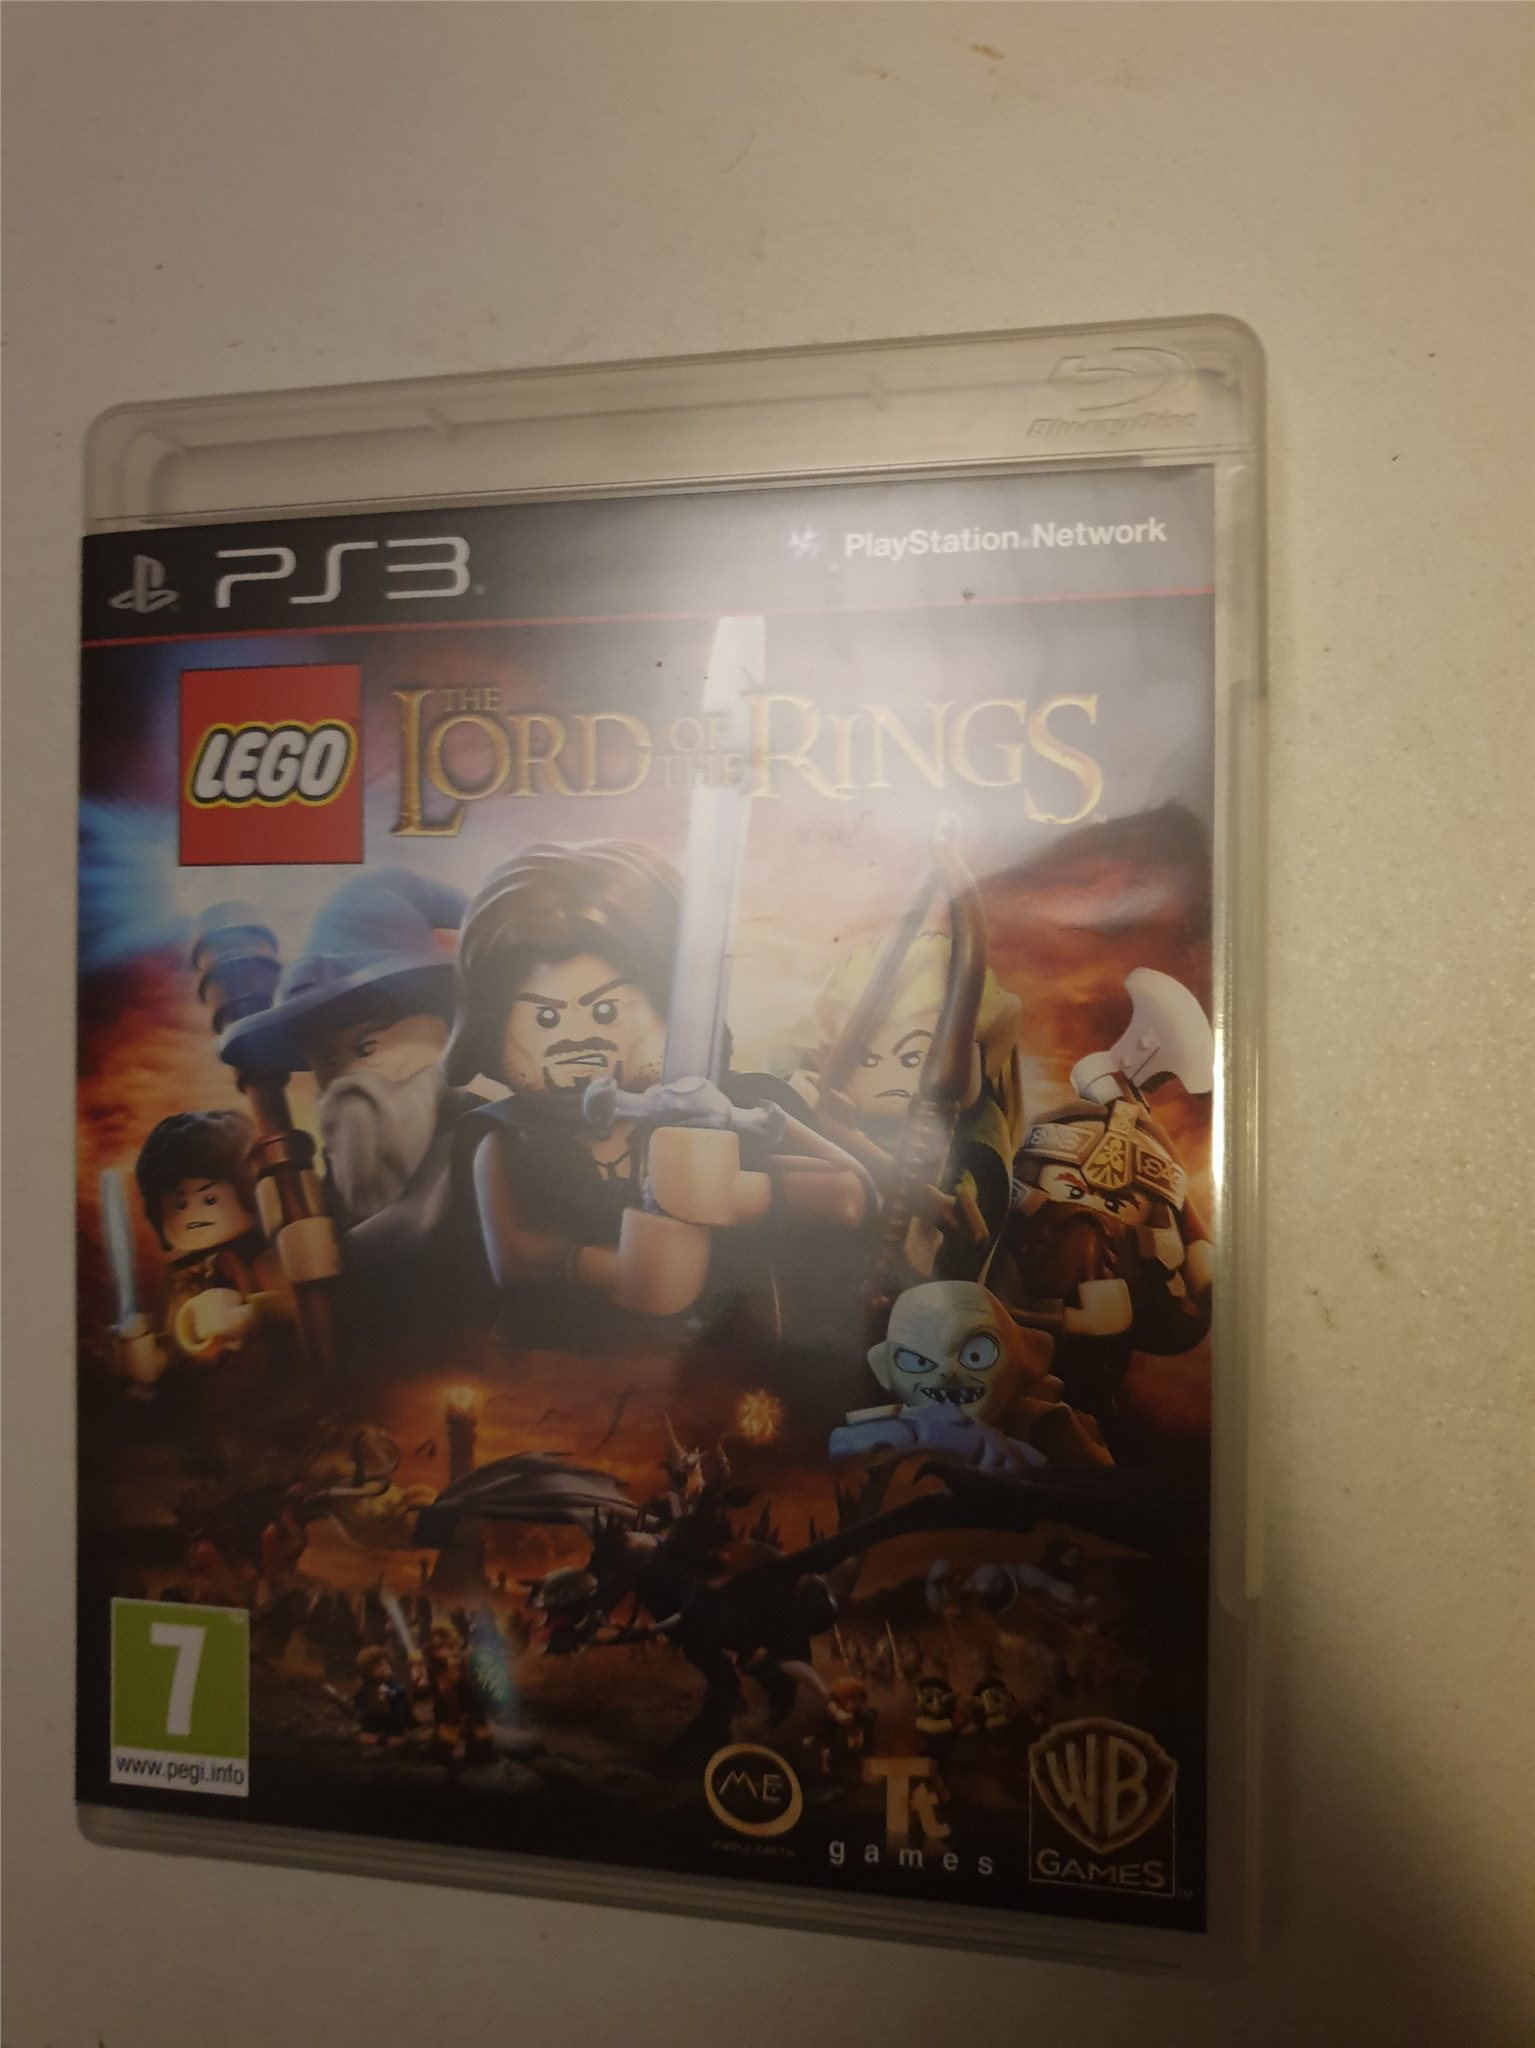 PS3 - Spel: Lego Lord of the Rings